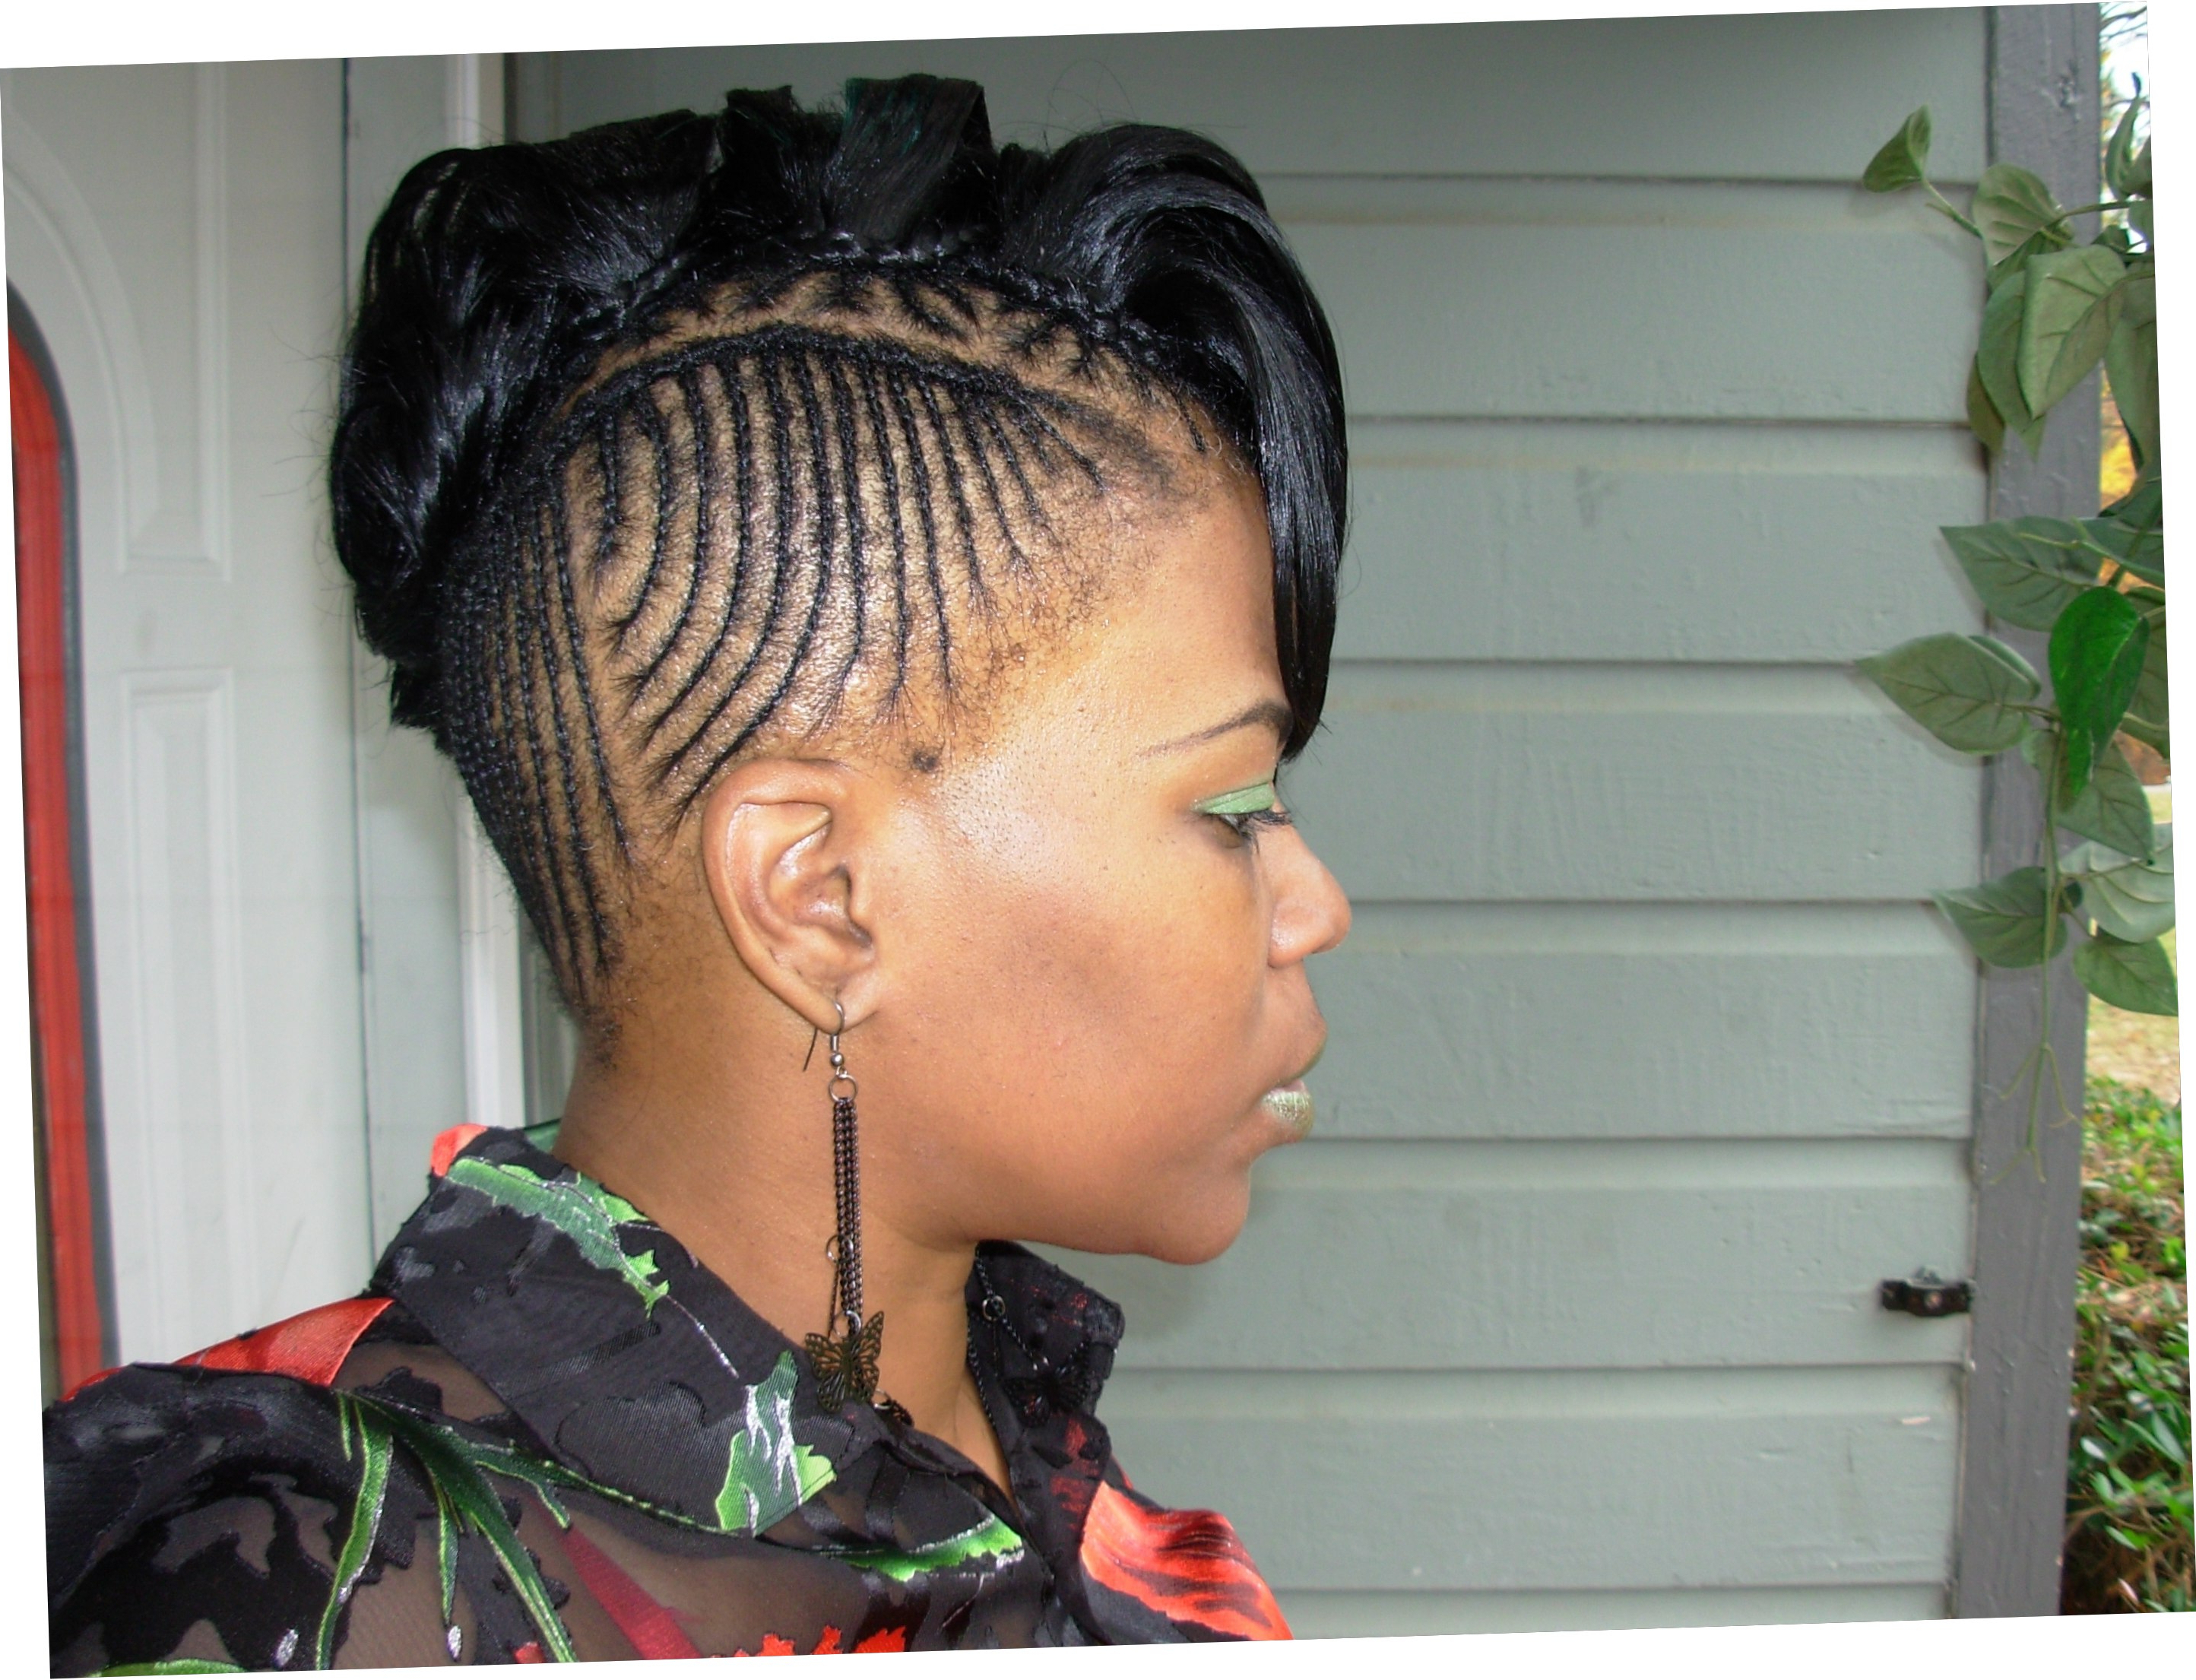 Mohawk Hairstyles For Black Women Curly Short Hair And Stock With Regard To Mohawk Short Hairstyles For Black Women (View 24 of 25)